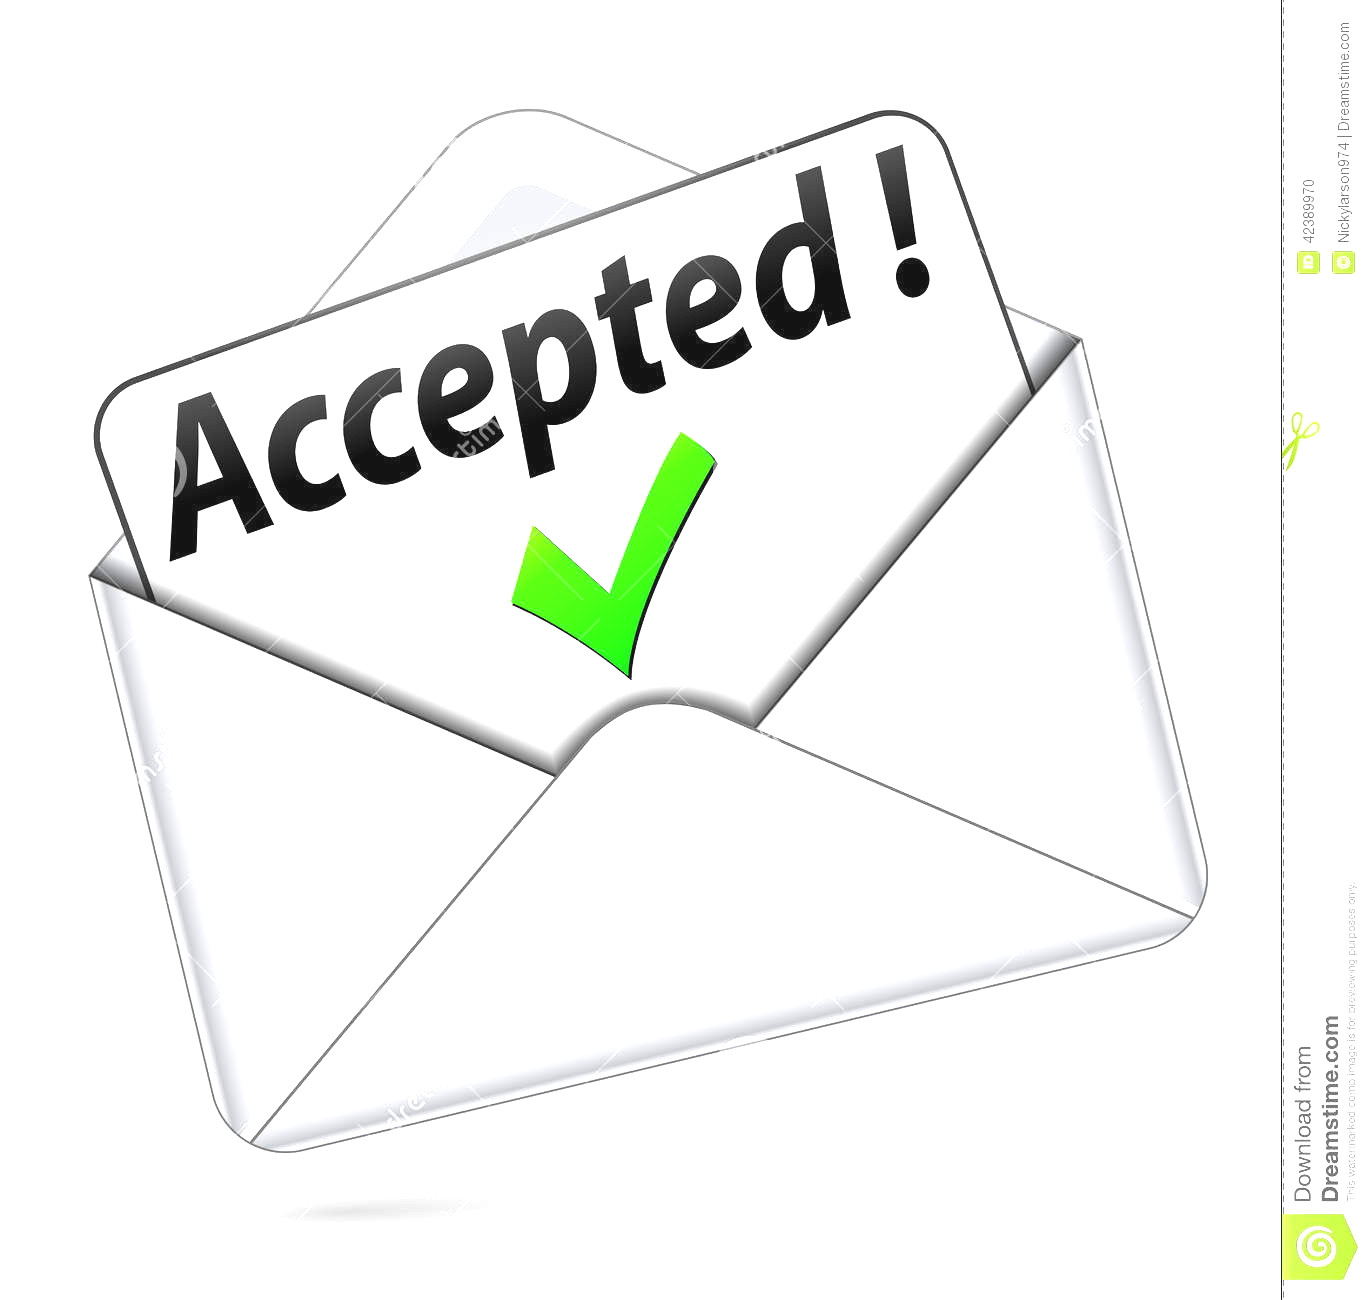 Acception clipart freeuse stock Acceptance Letter Clipart 0 - contesting wiki freeuse stock